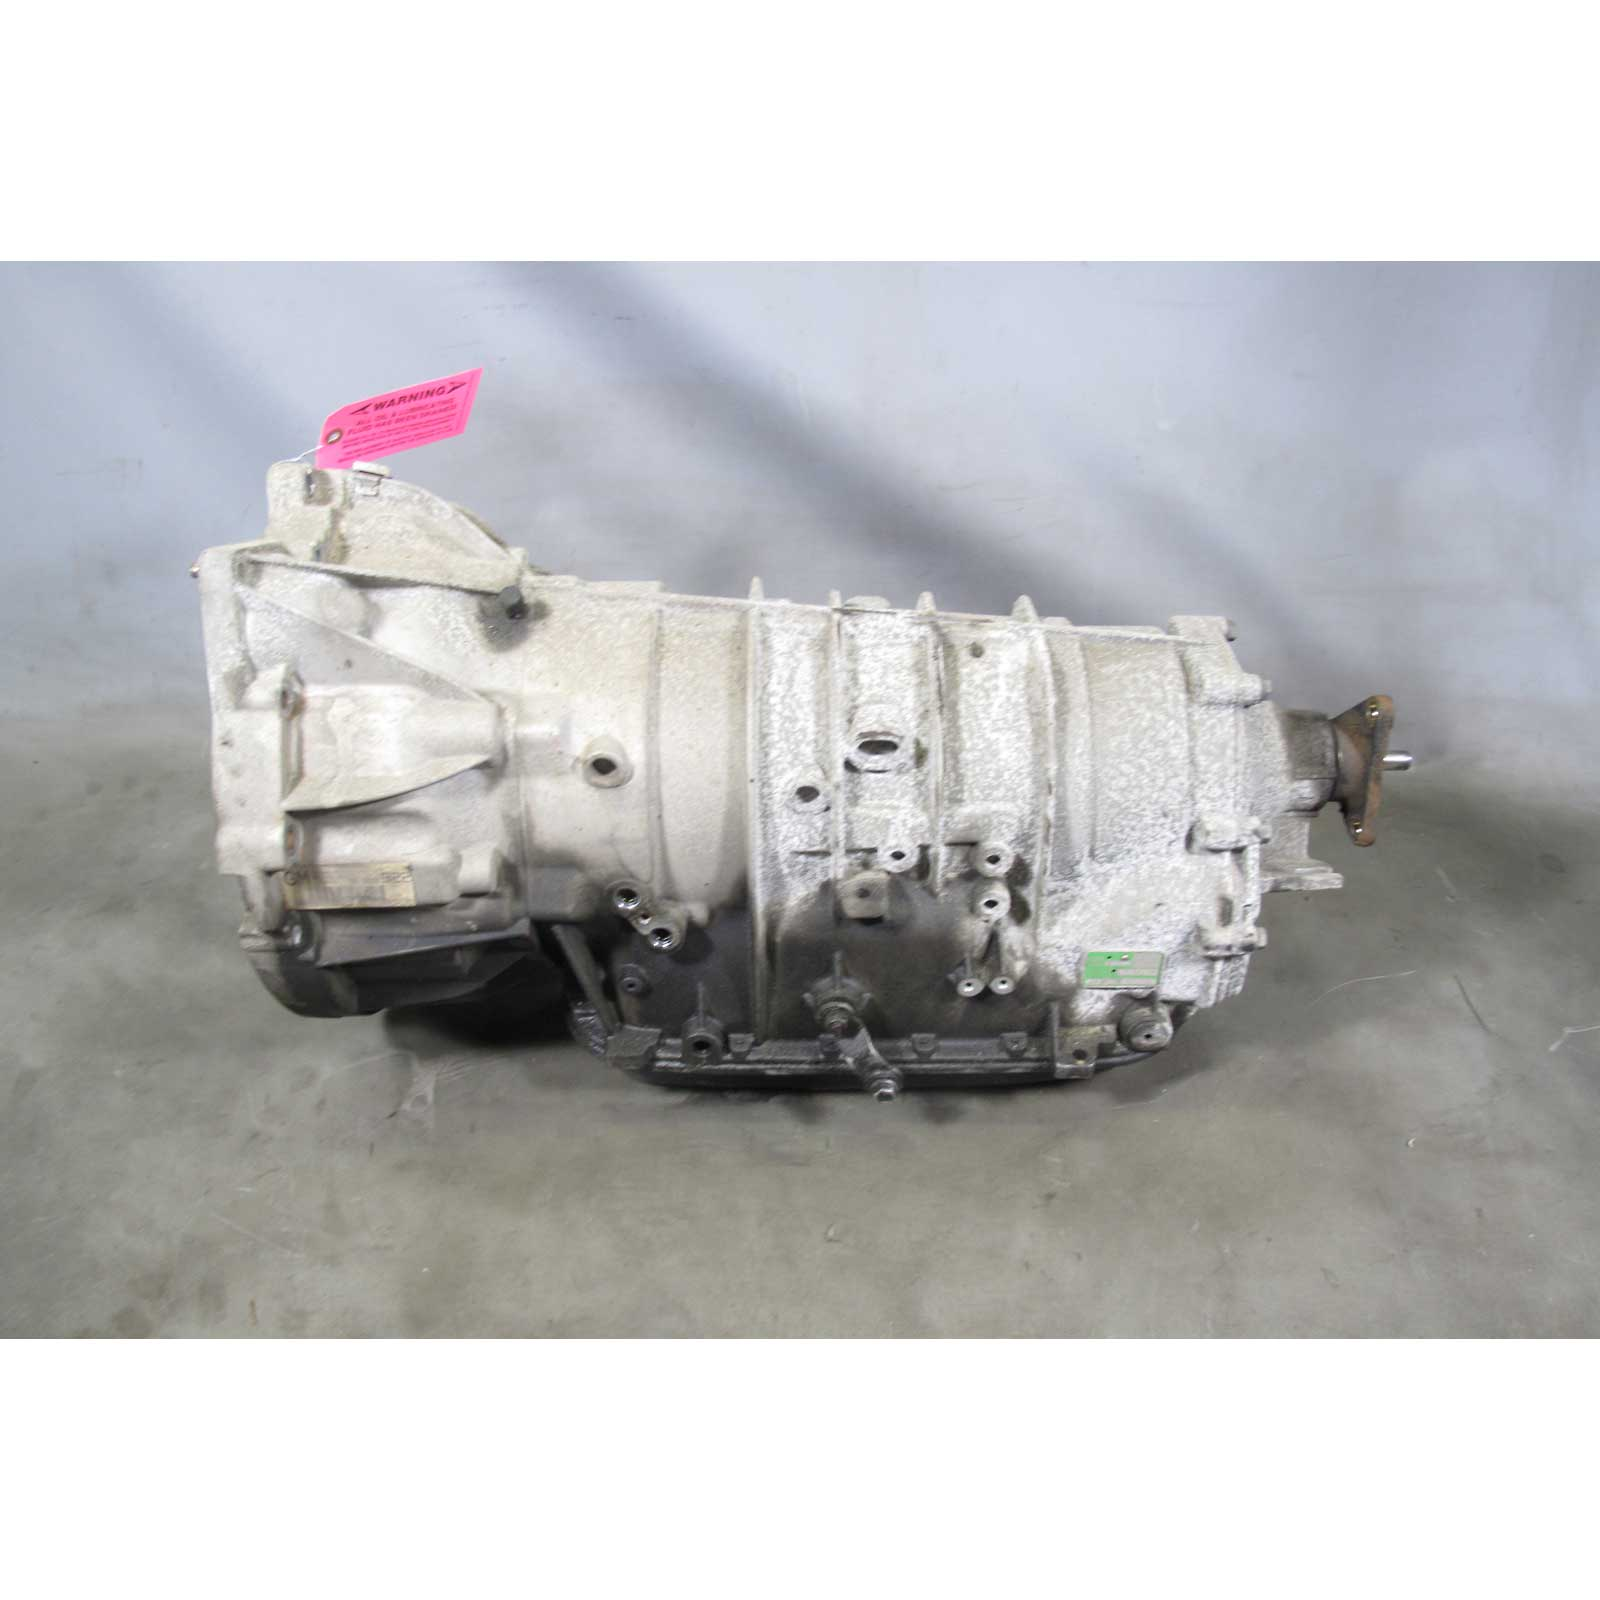 2001 Bmw E39 525i E46 325i Z3 2 5 Automatic Transmission W